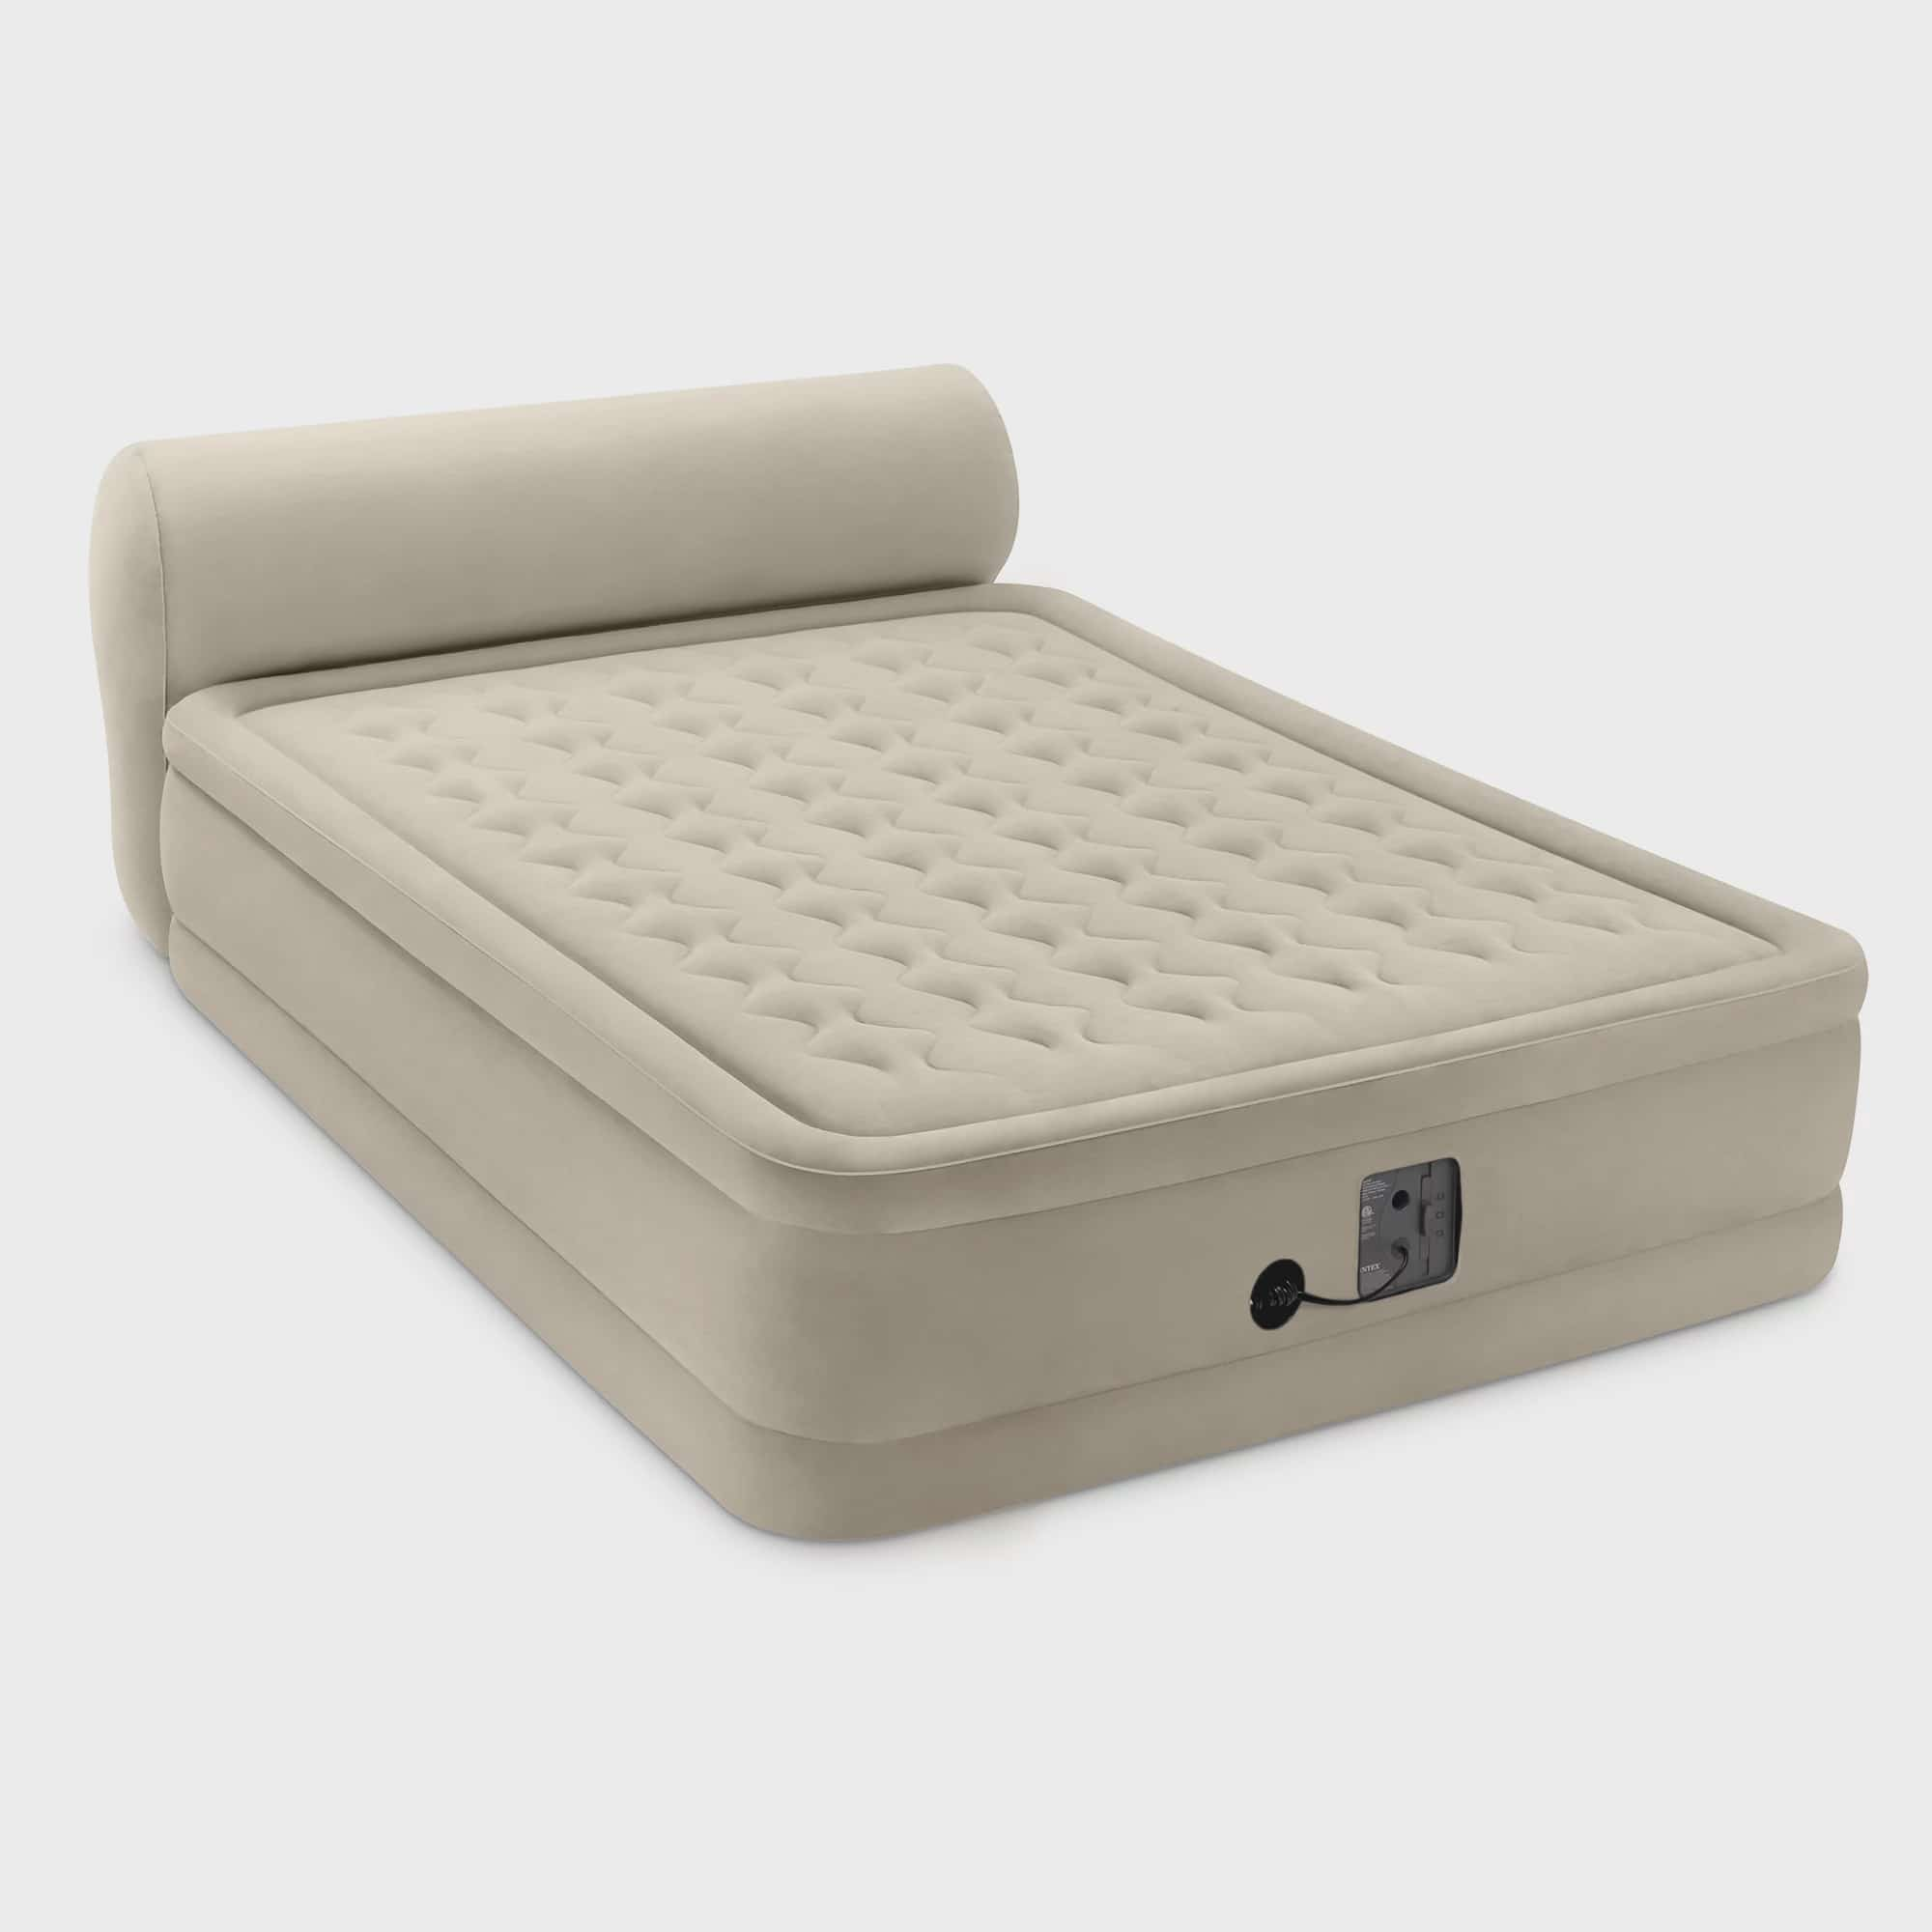 Insta-Bed 18 Inch Queen Sized Inflatable Airbed Mattress with Internal AC Pump